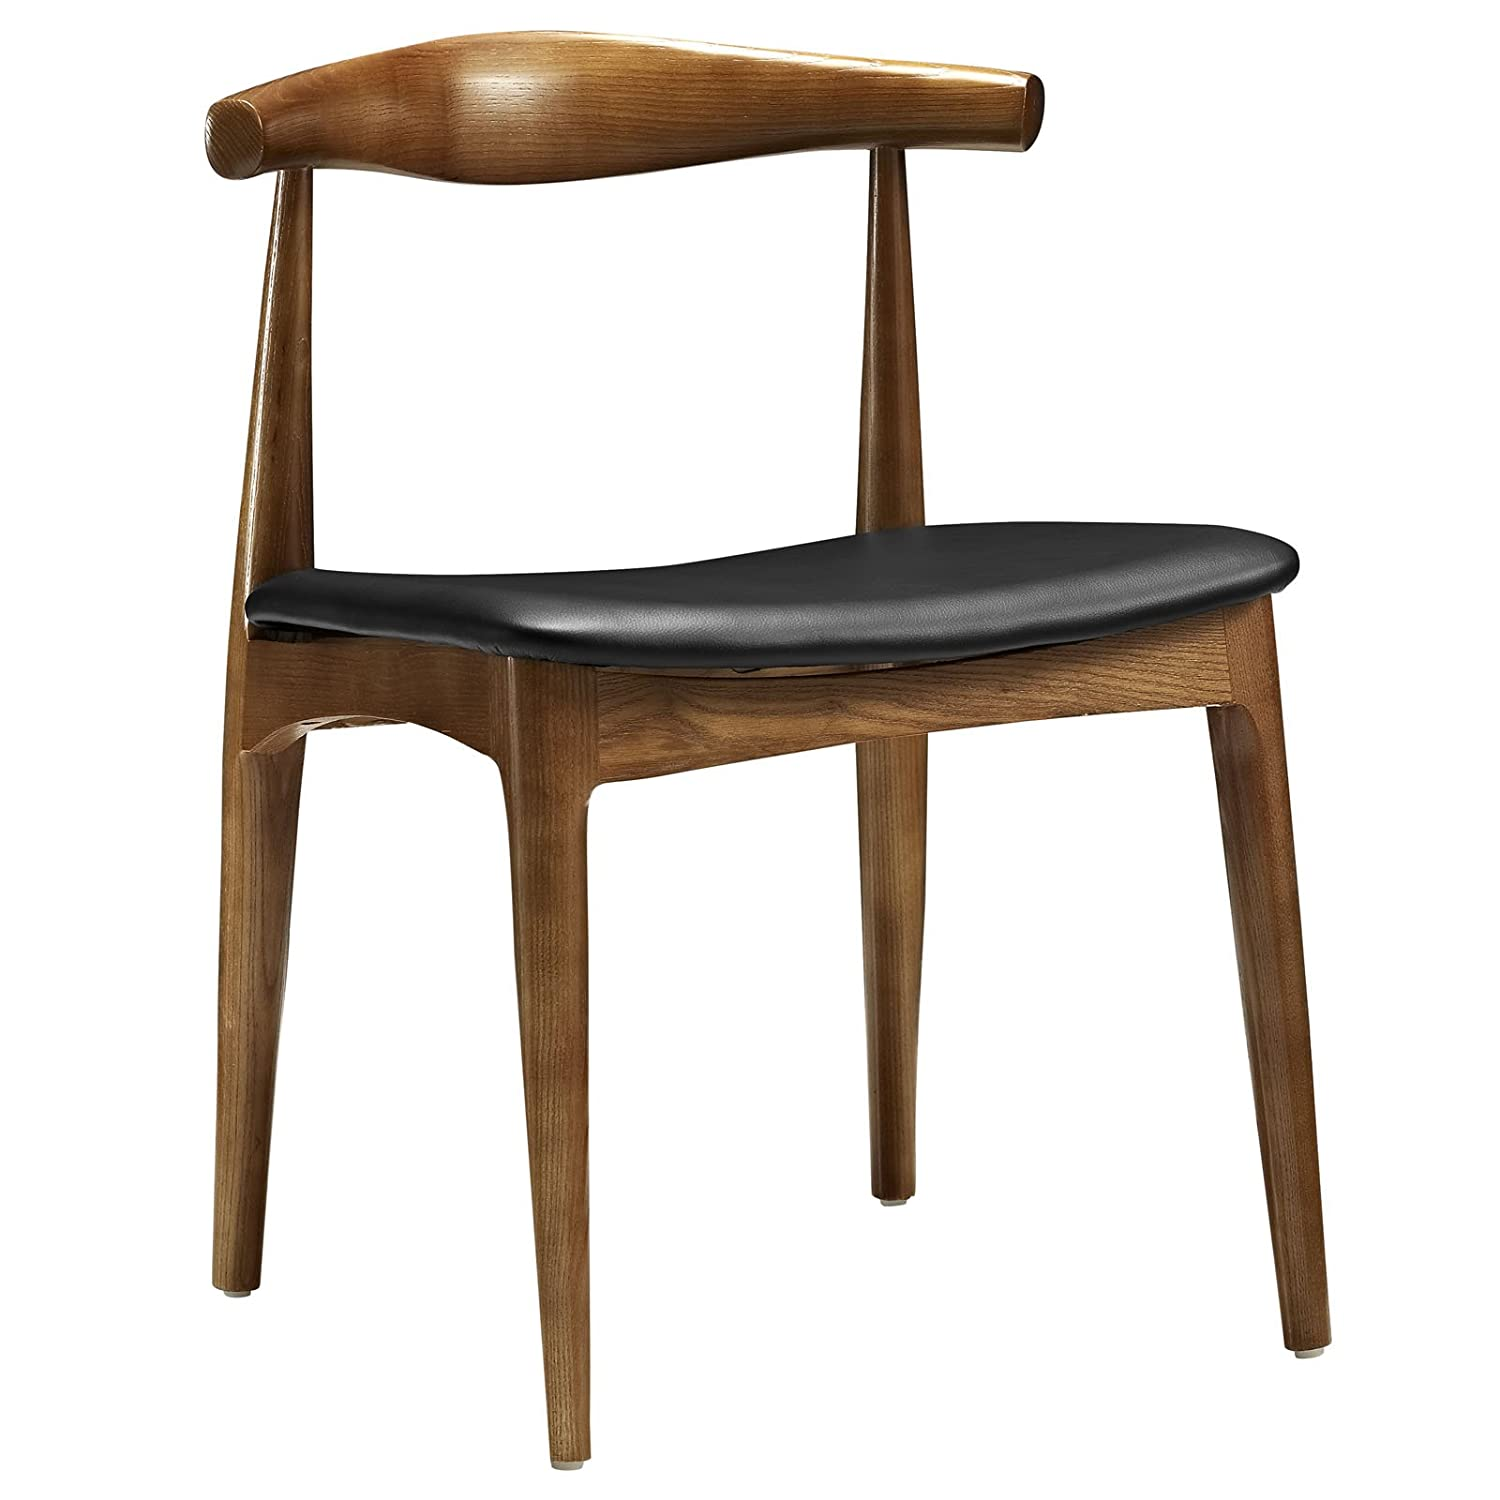 Awesome Amazon.com   Modway Tracy Mid Century Dining Side Chair With Faux Leather  Seat In Black   Chairs